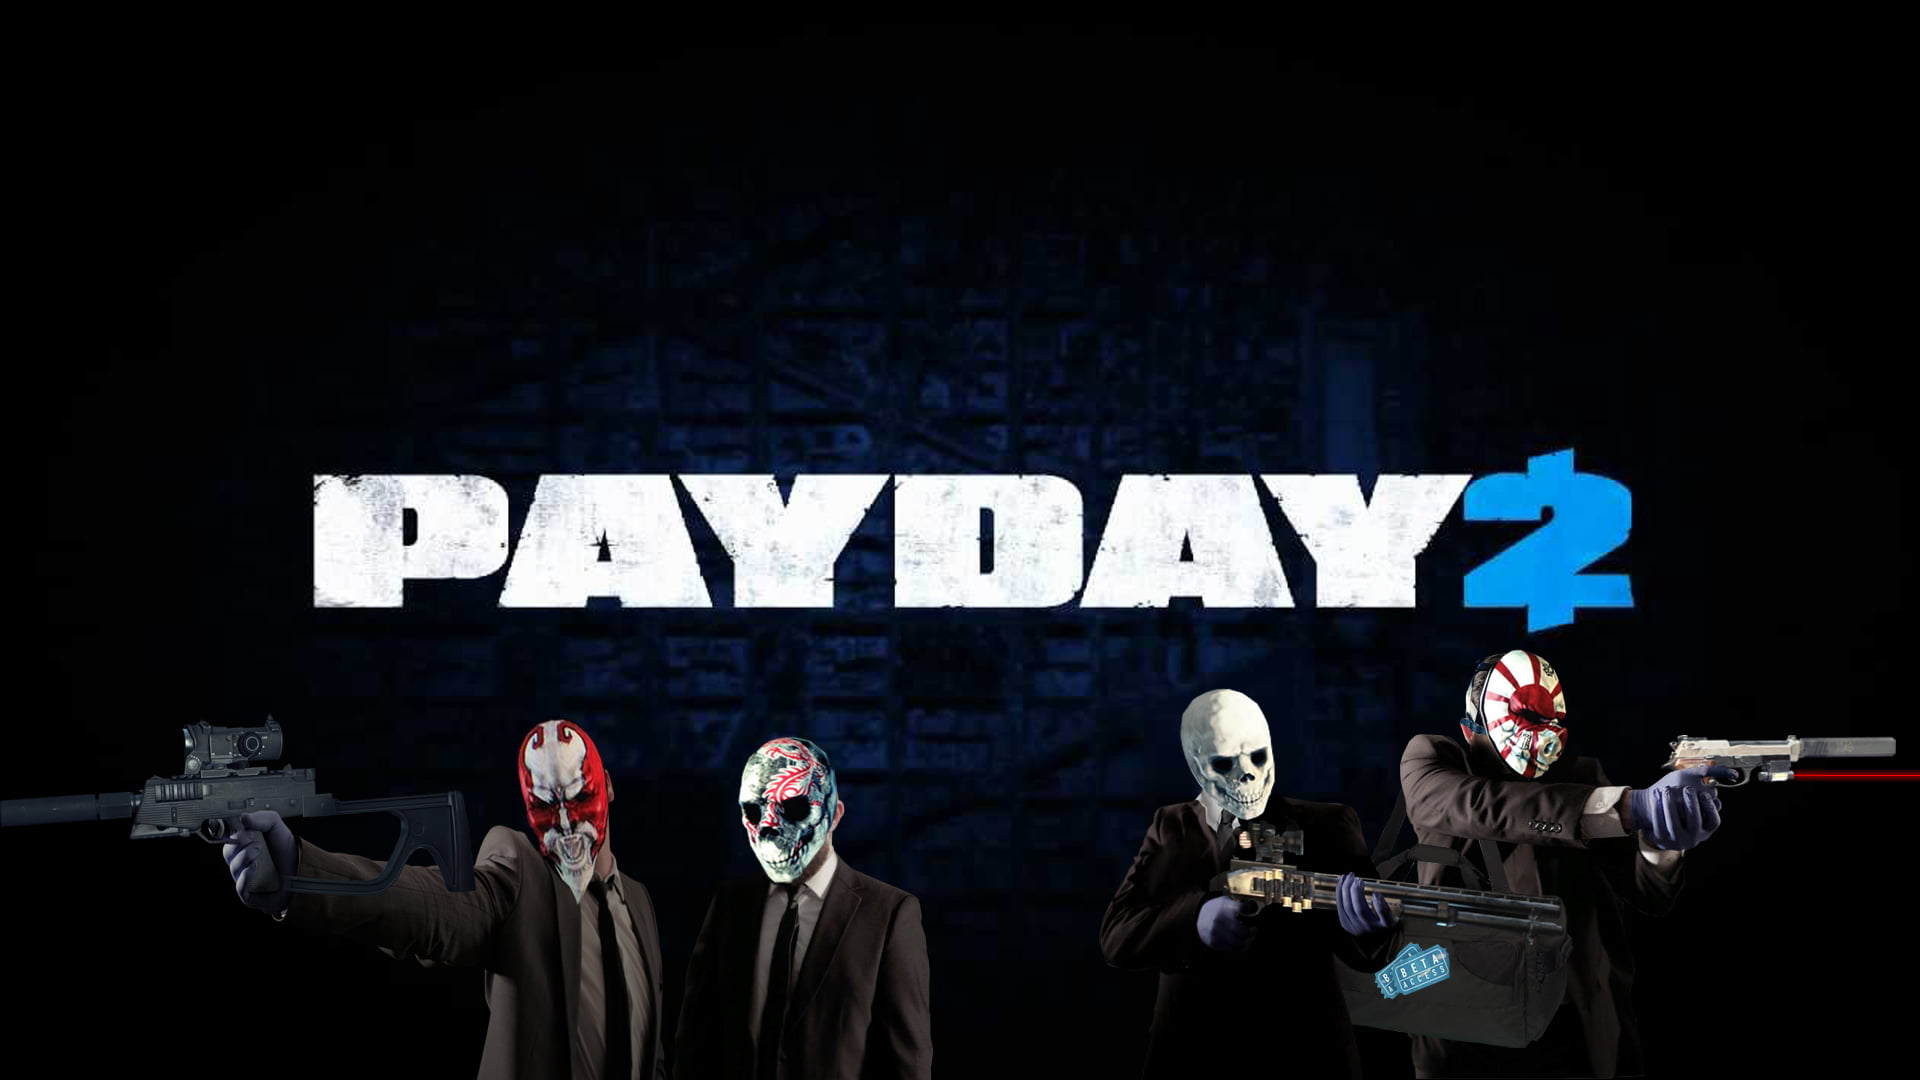 Payday 2 Payday Game Payday 3: Payday 2 Review